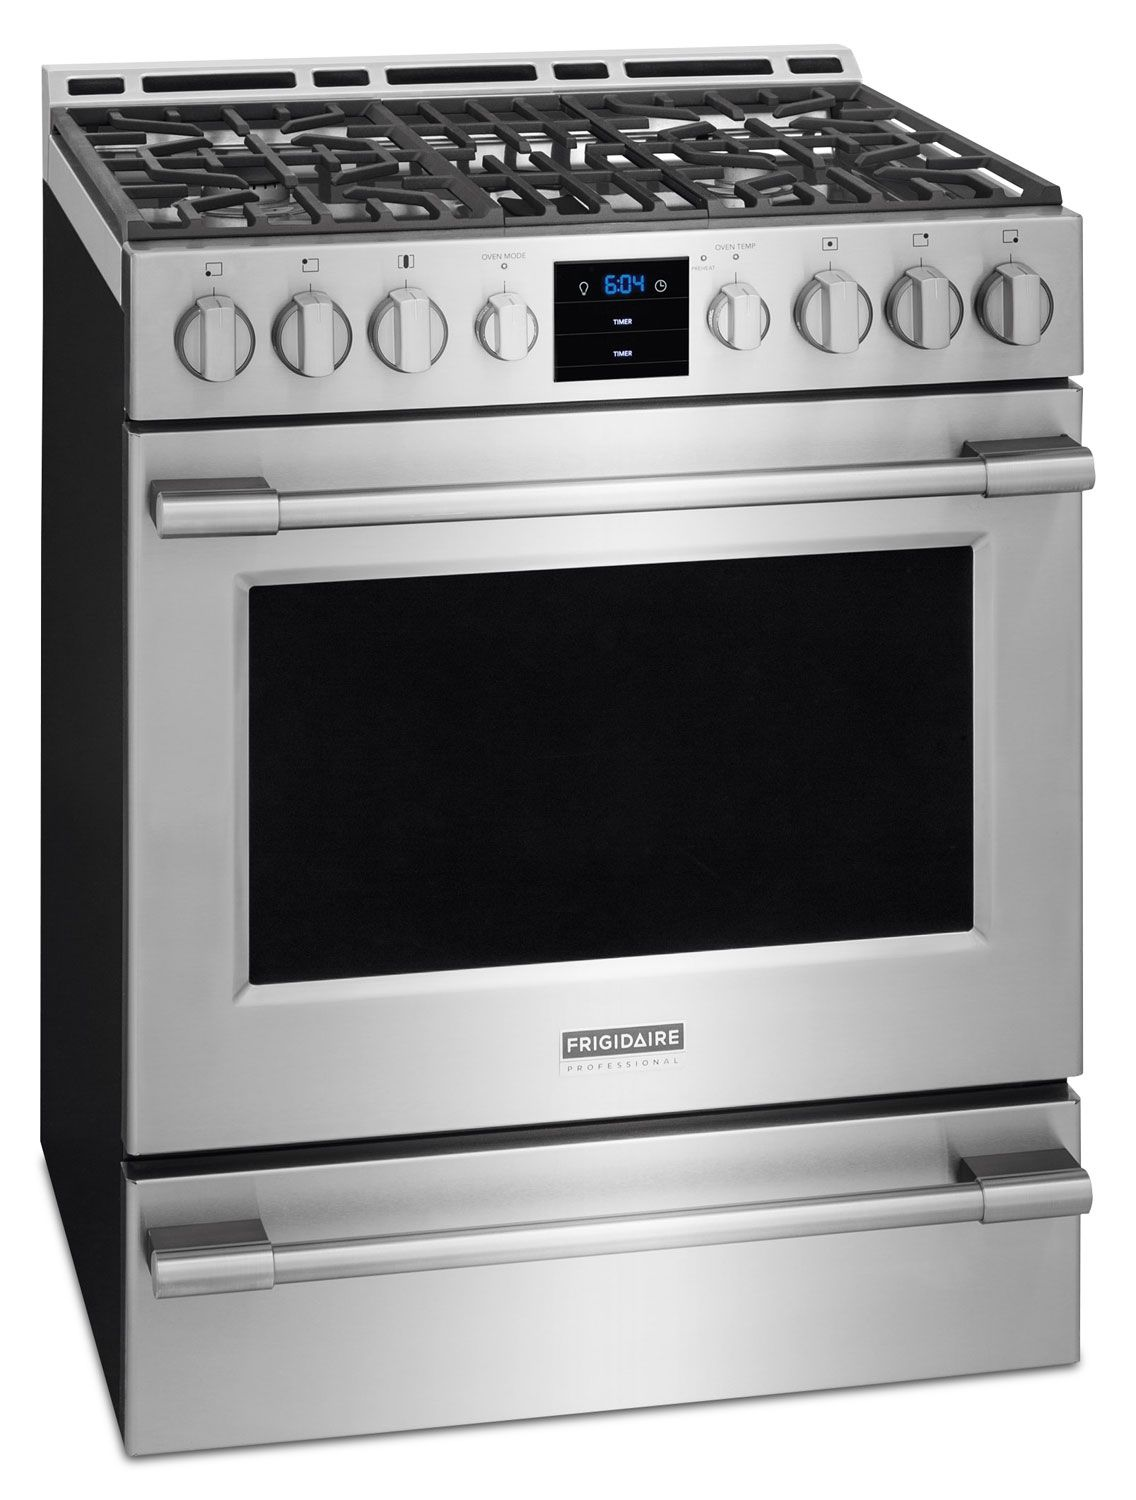 Cooking Products Frigidaire Professional Stainless Steel Freestanding Gas Convection Range 5 1 Cu Ft Fpgh3077rf